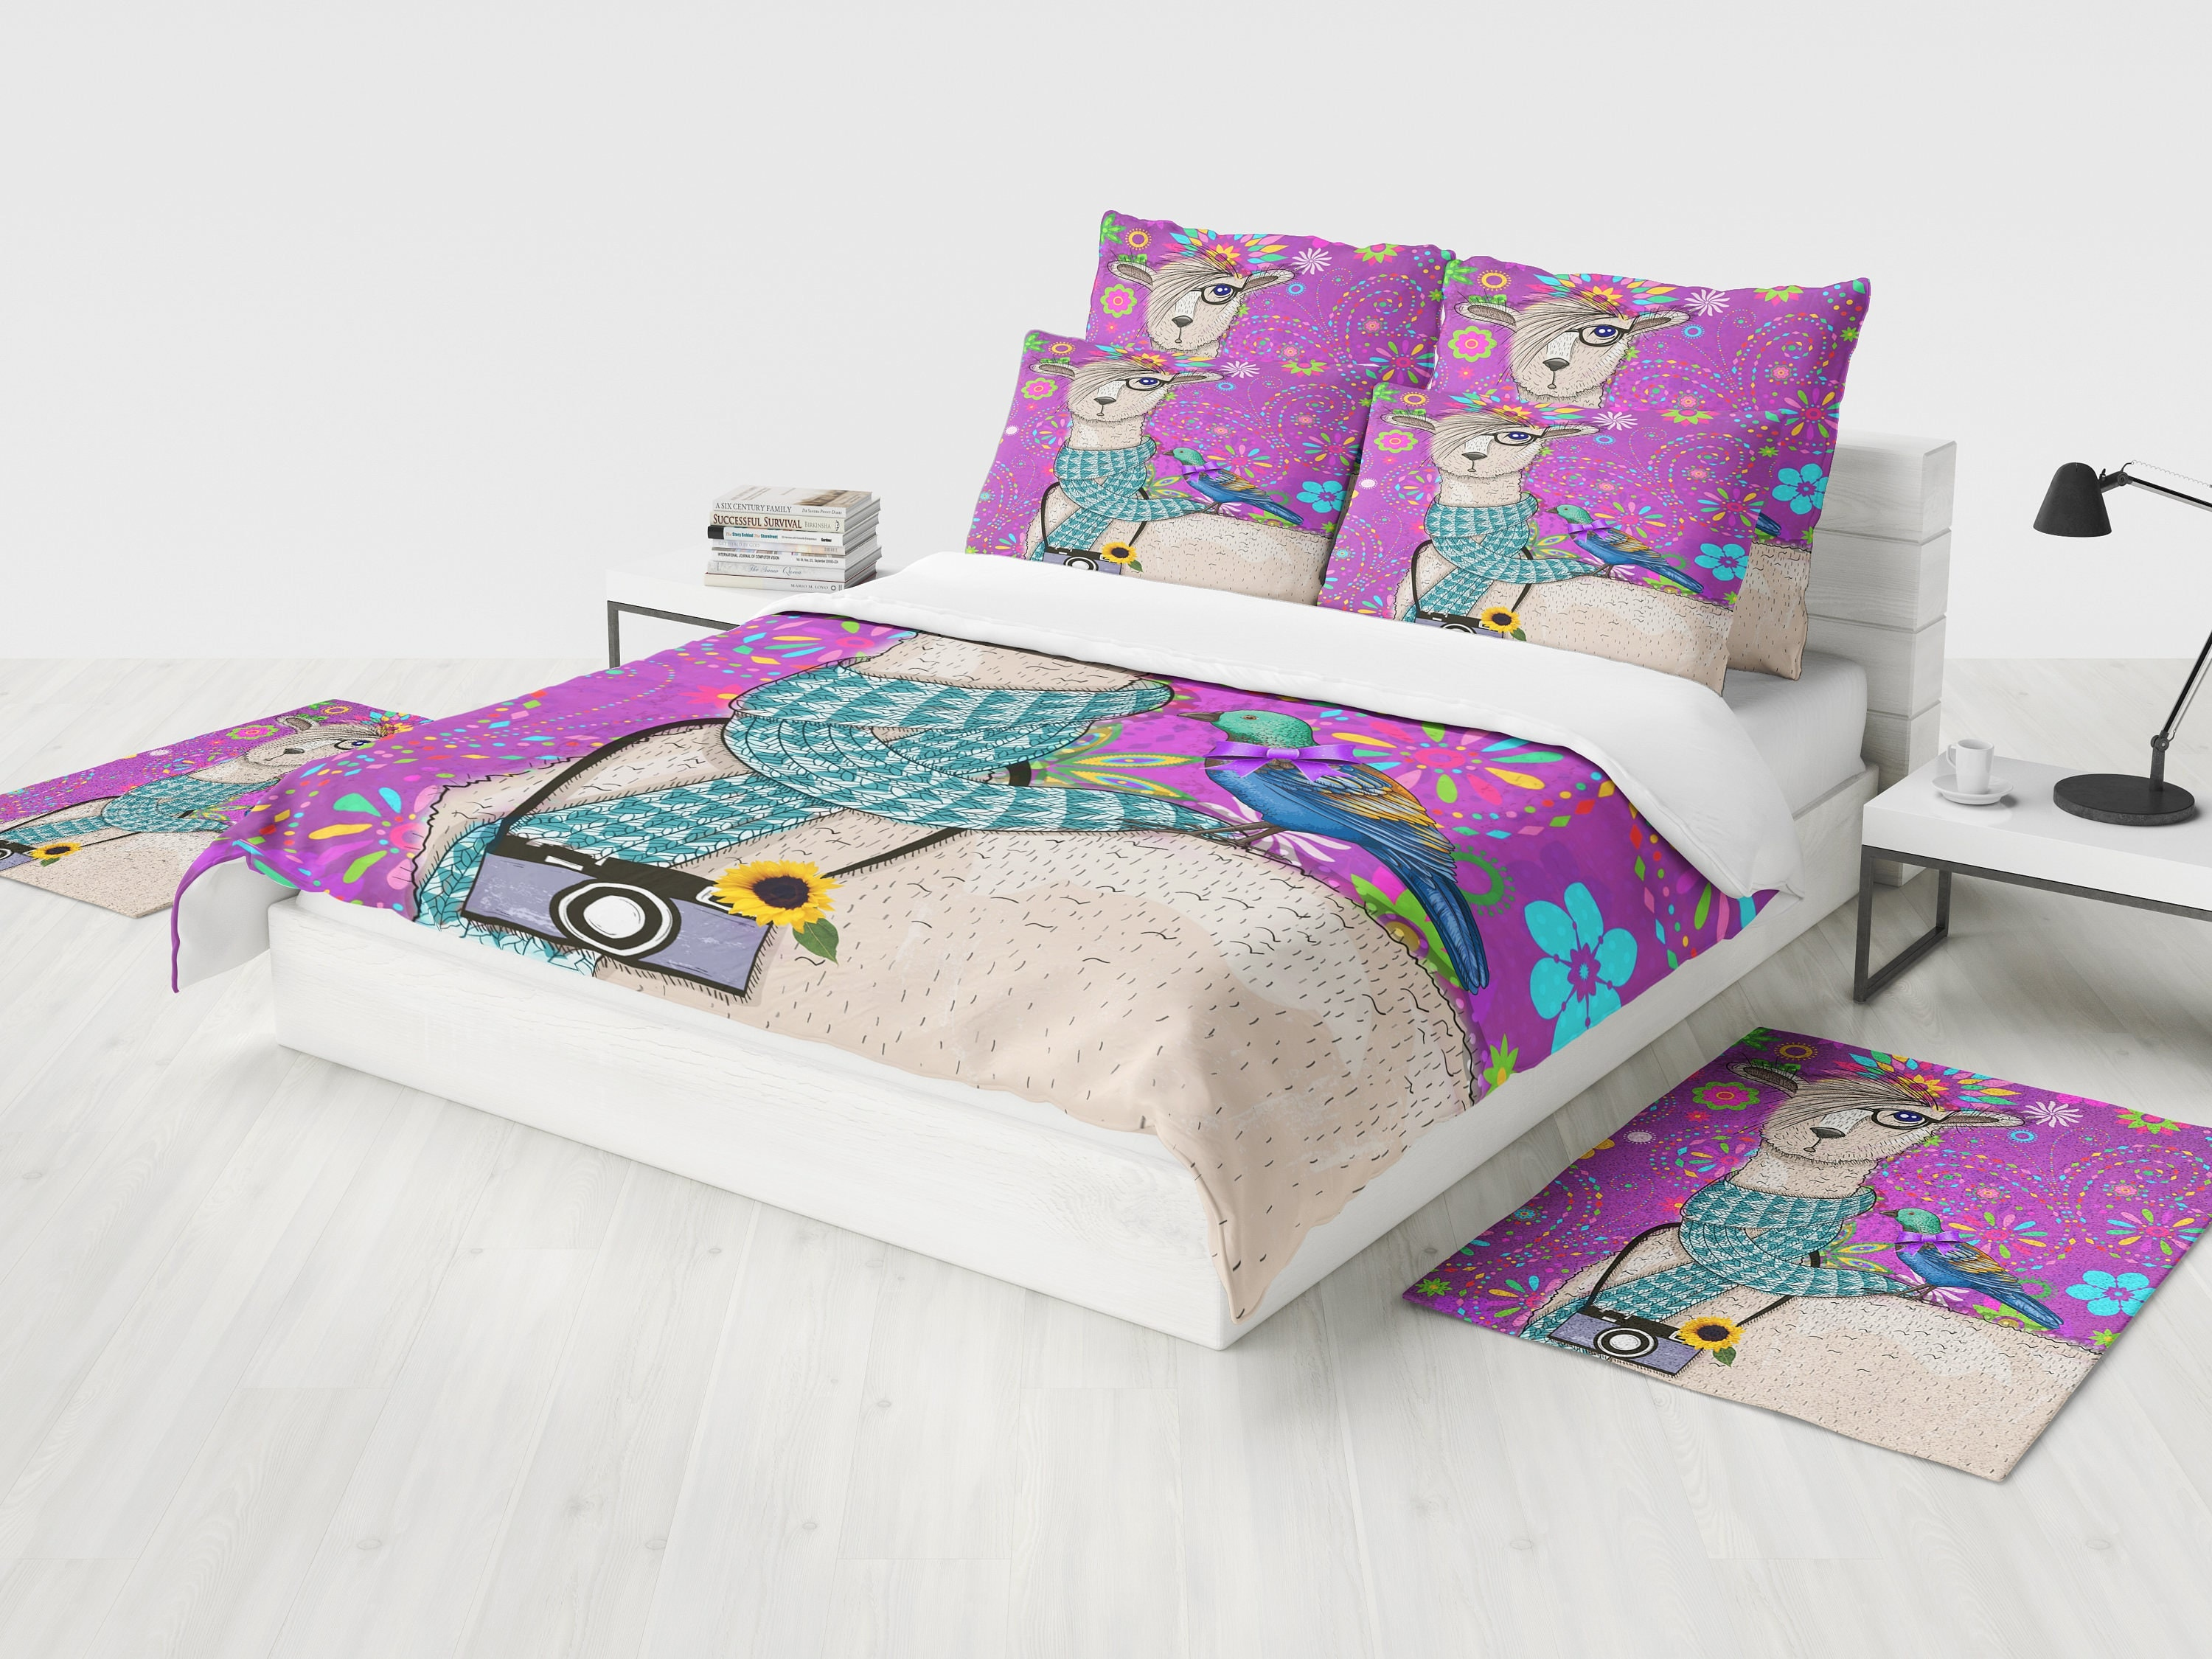 hipster llama bedding purple floral bird duvet cover or